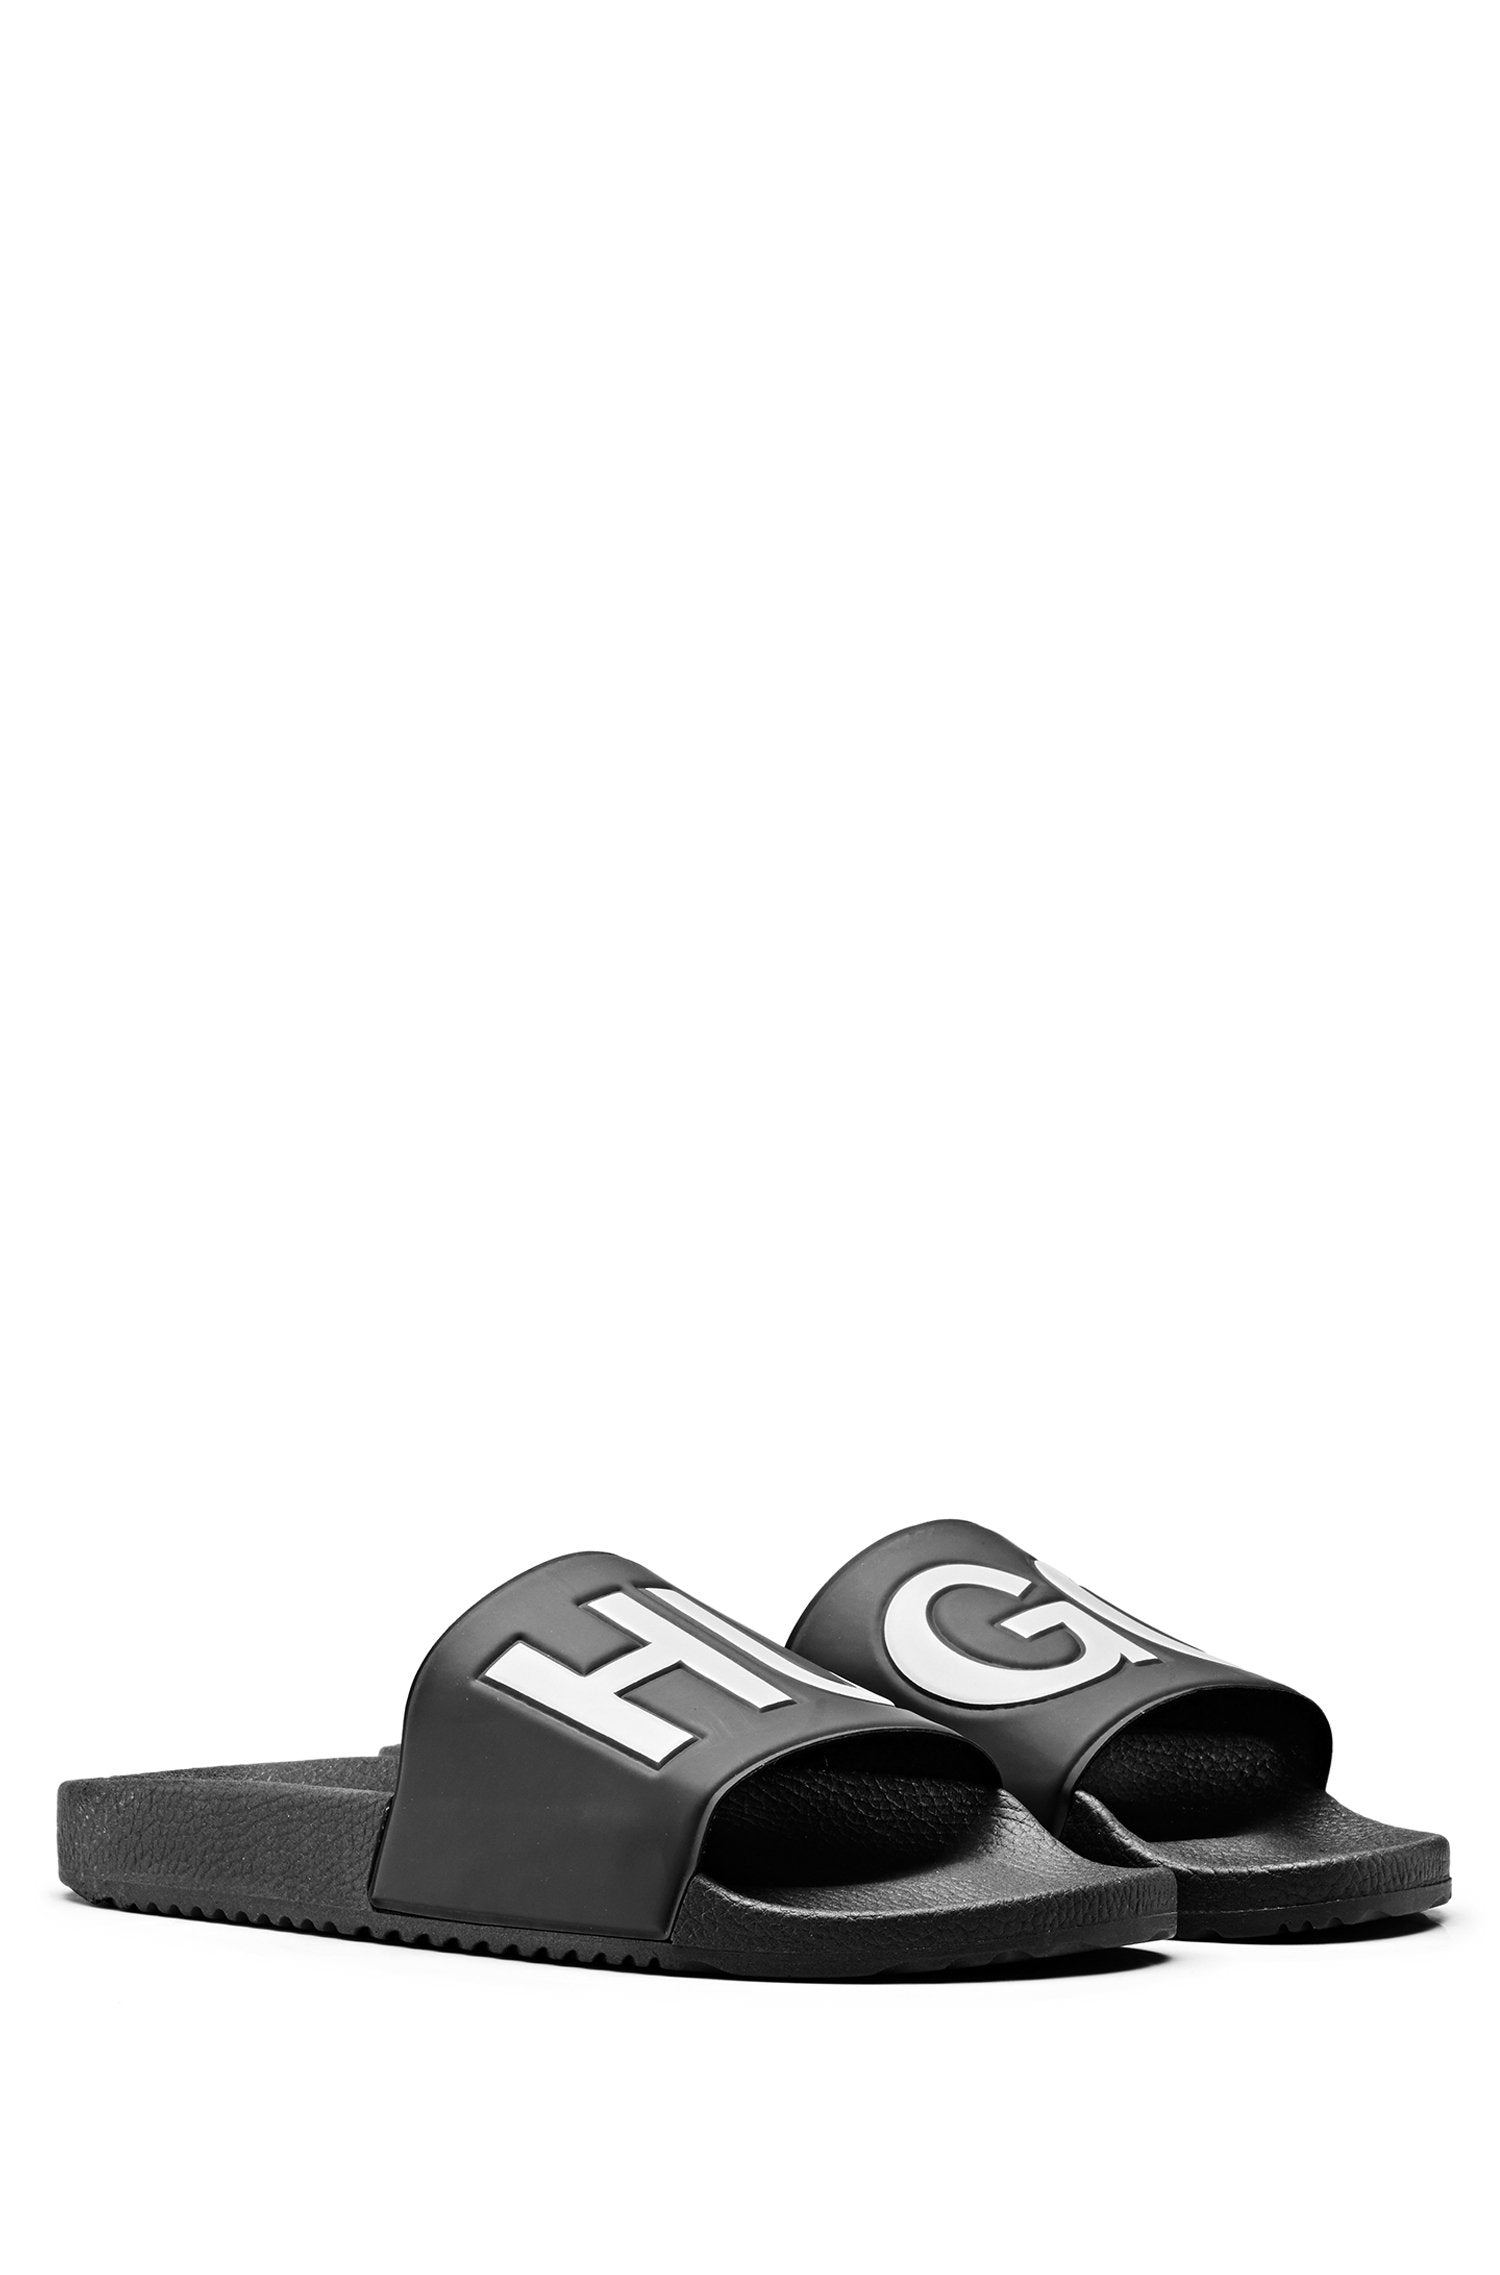 HUGO BOSS TIMEOUT_SLIP_RBLG ADULT'S SANDAL 50411426-001